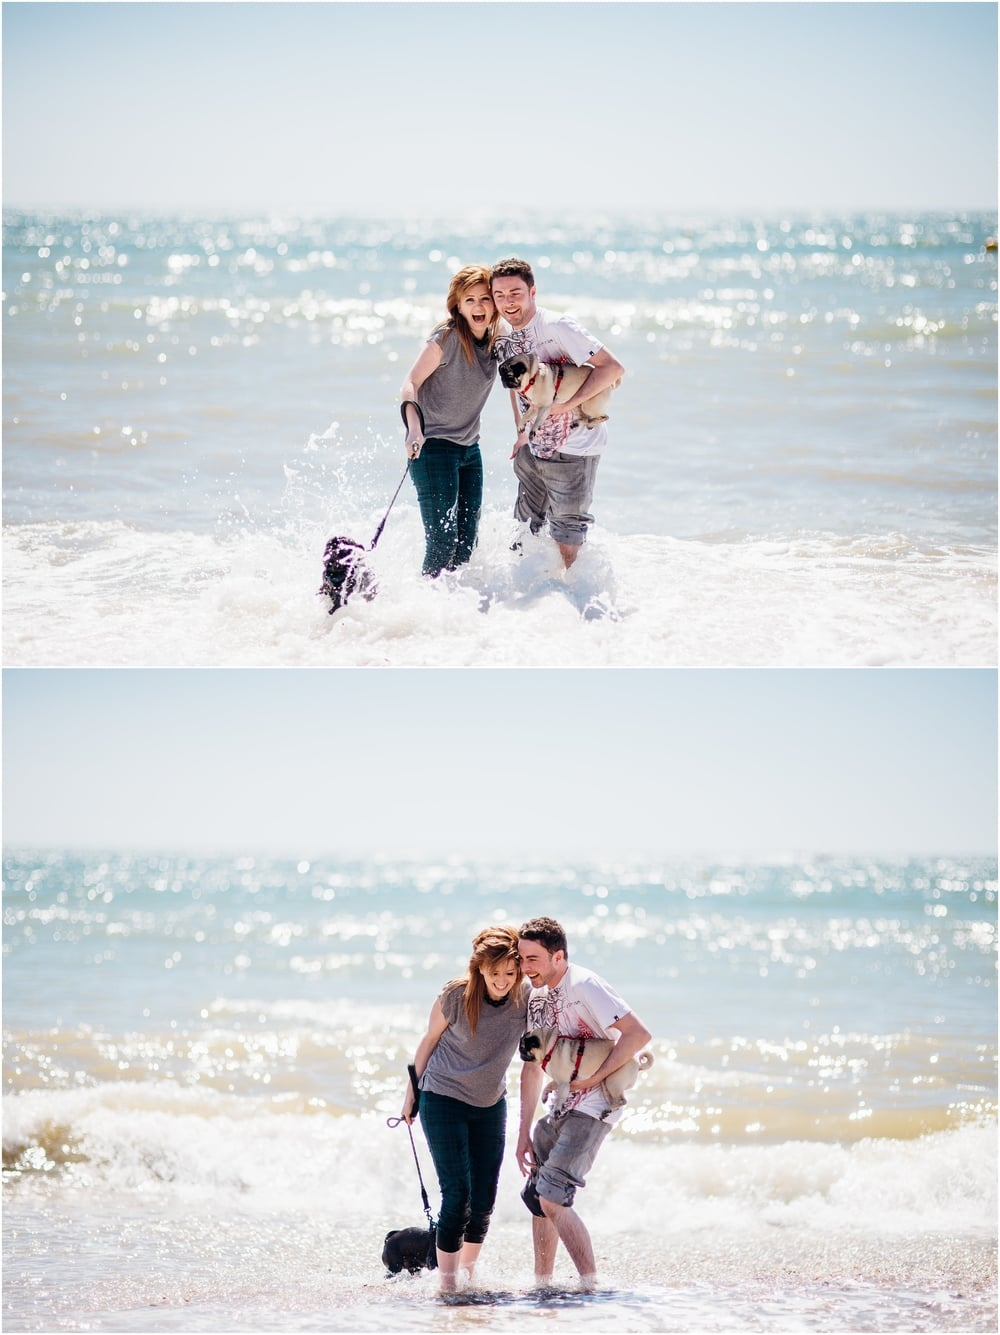 brighton wedding photographer_0010.jpg